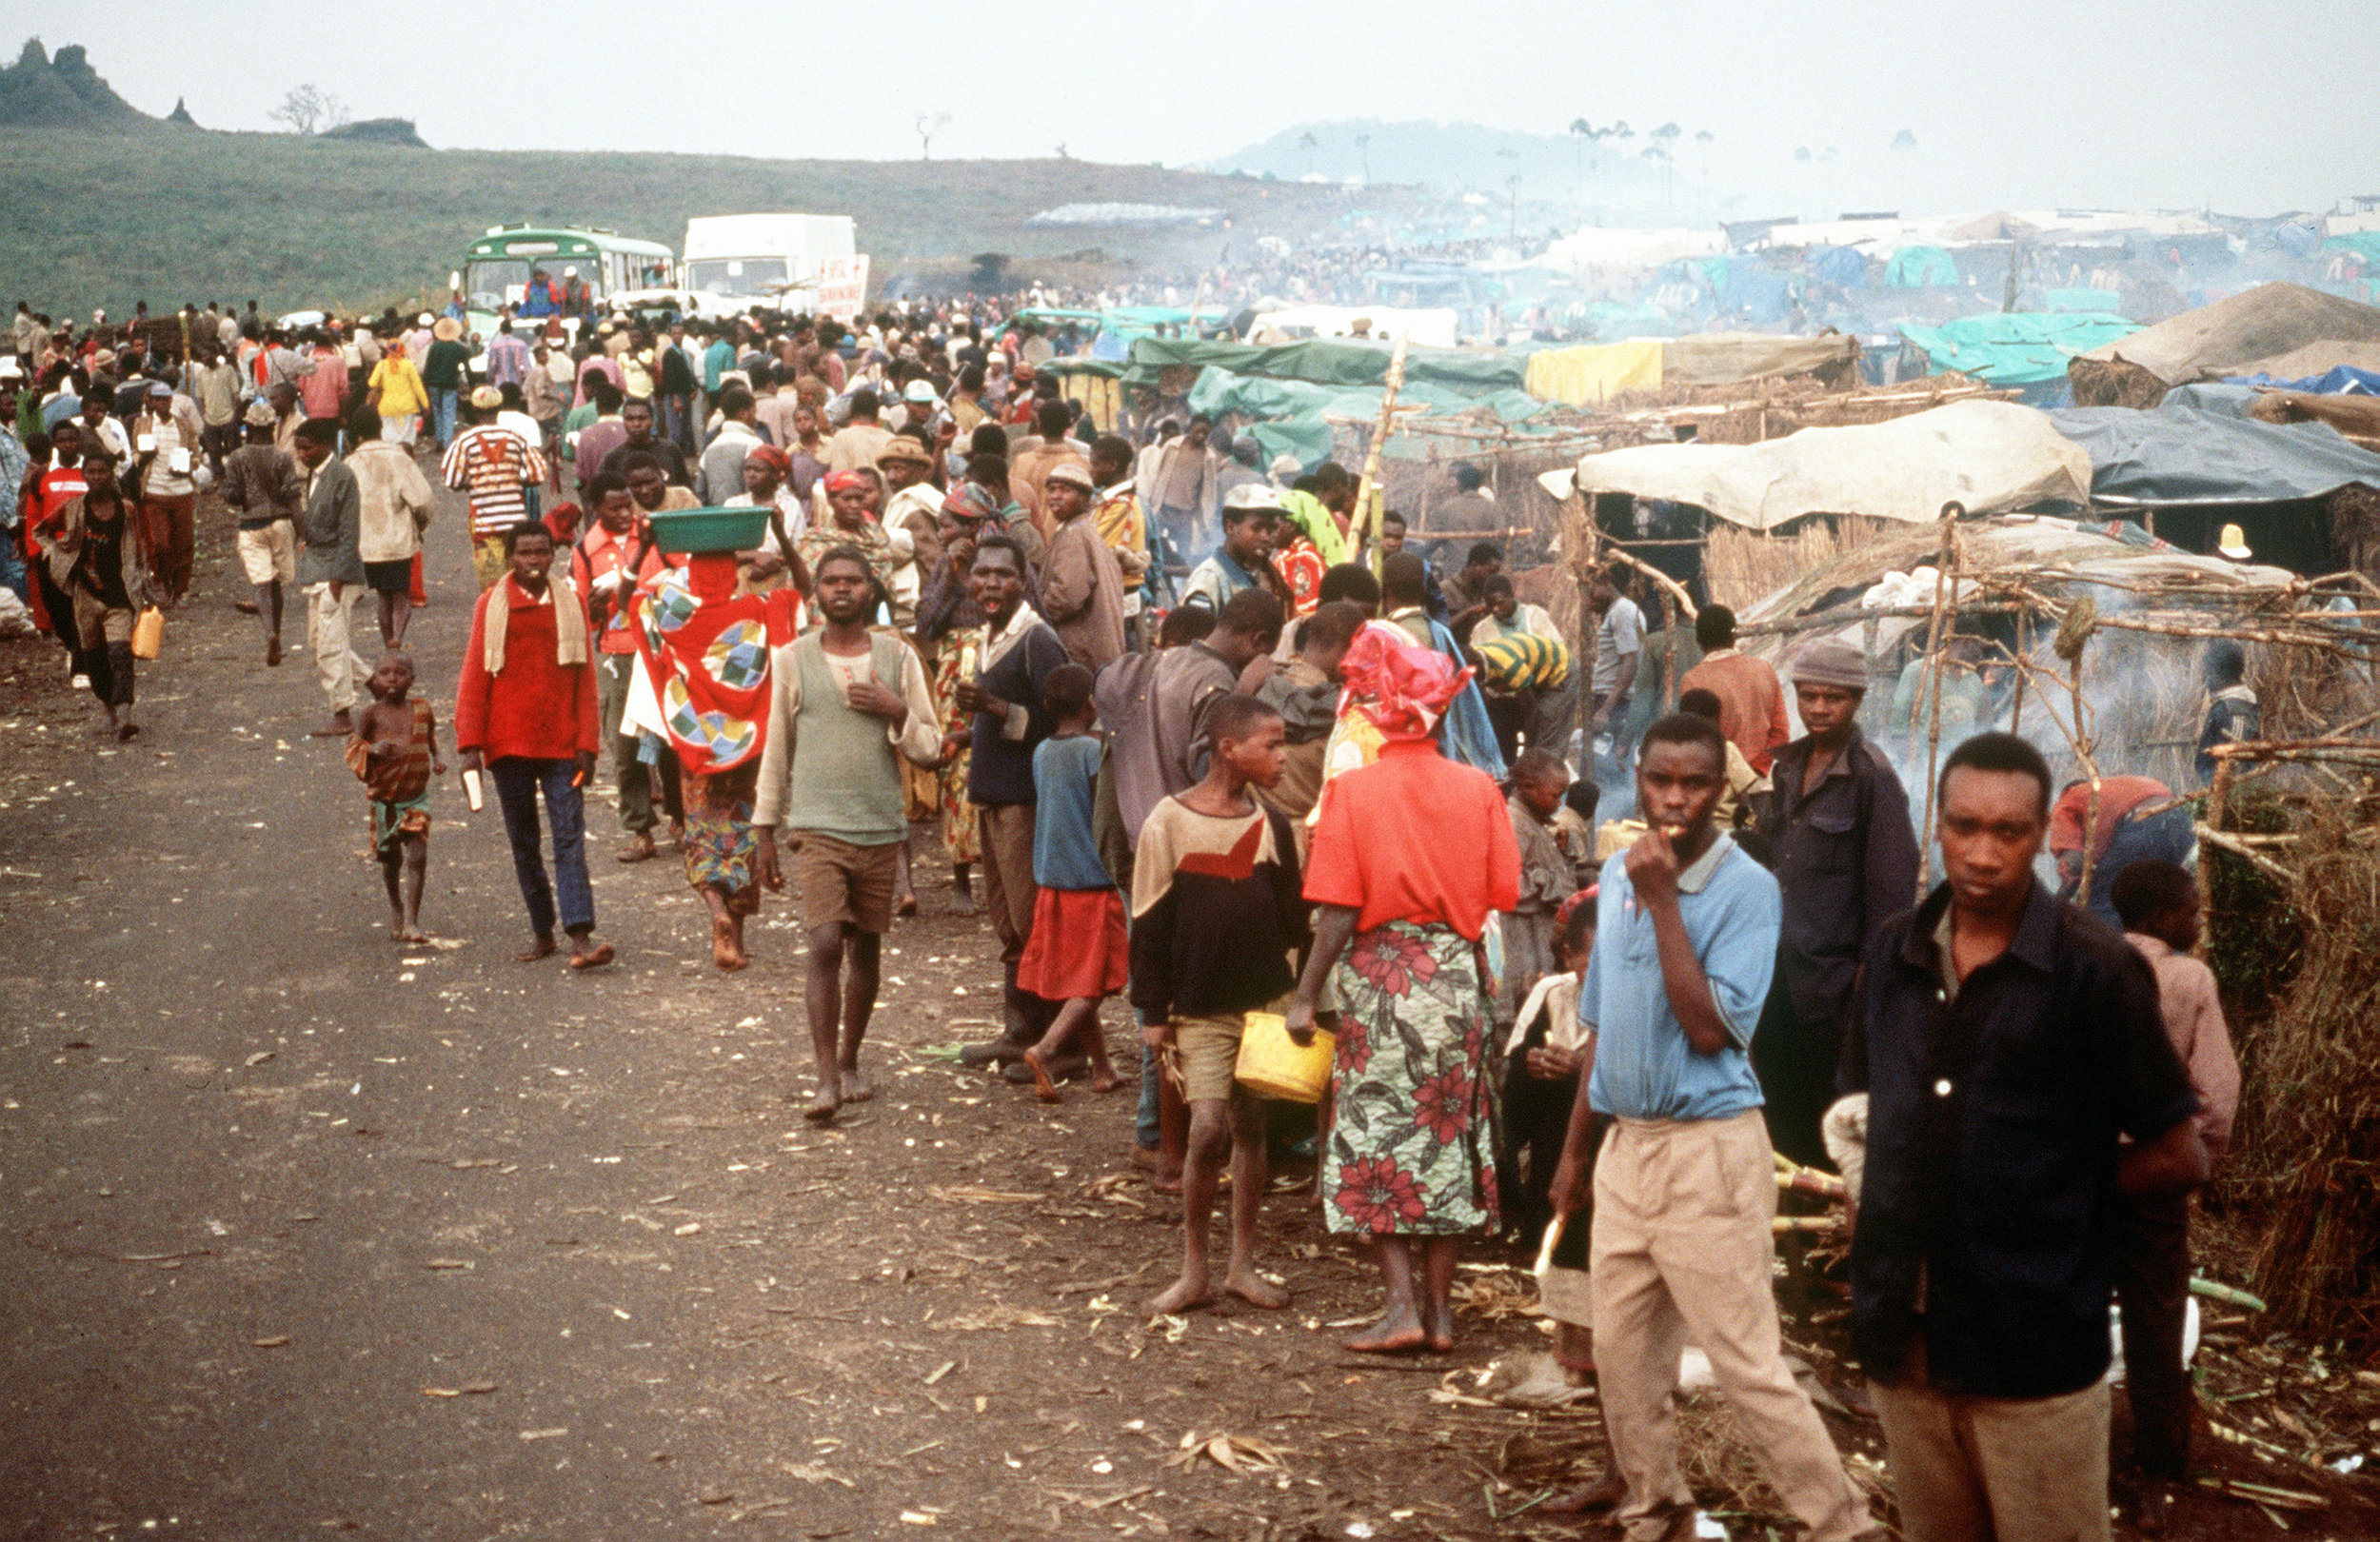 A refugee camp in the eastern Democratic Republic of the Congo, 1994. Photo: U.S. Archives.